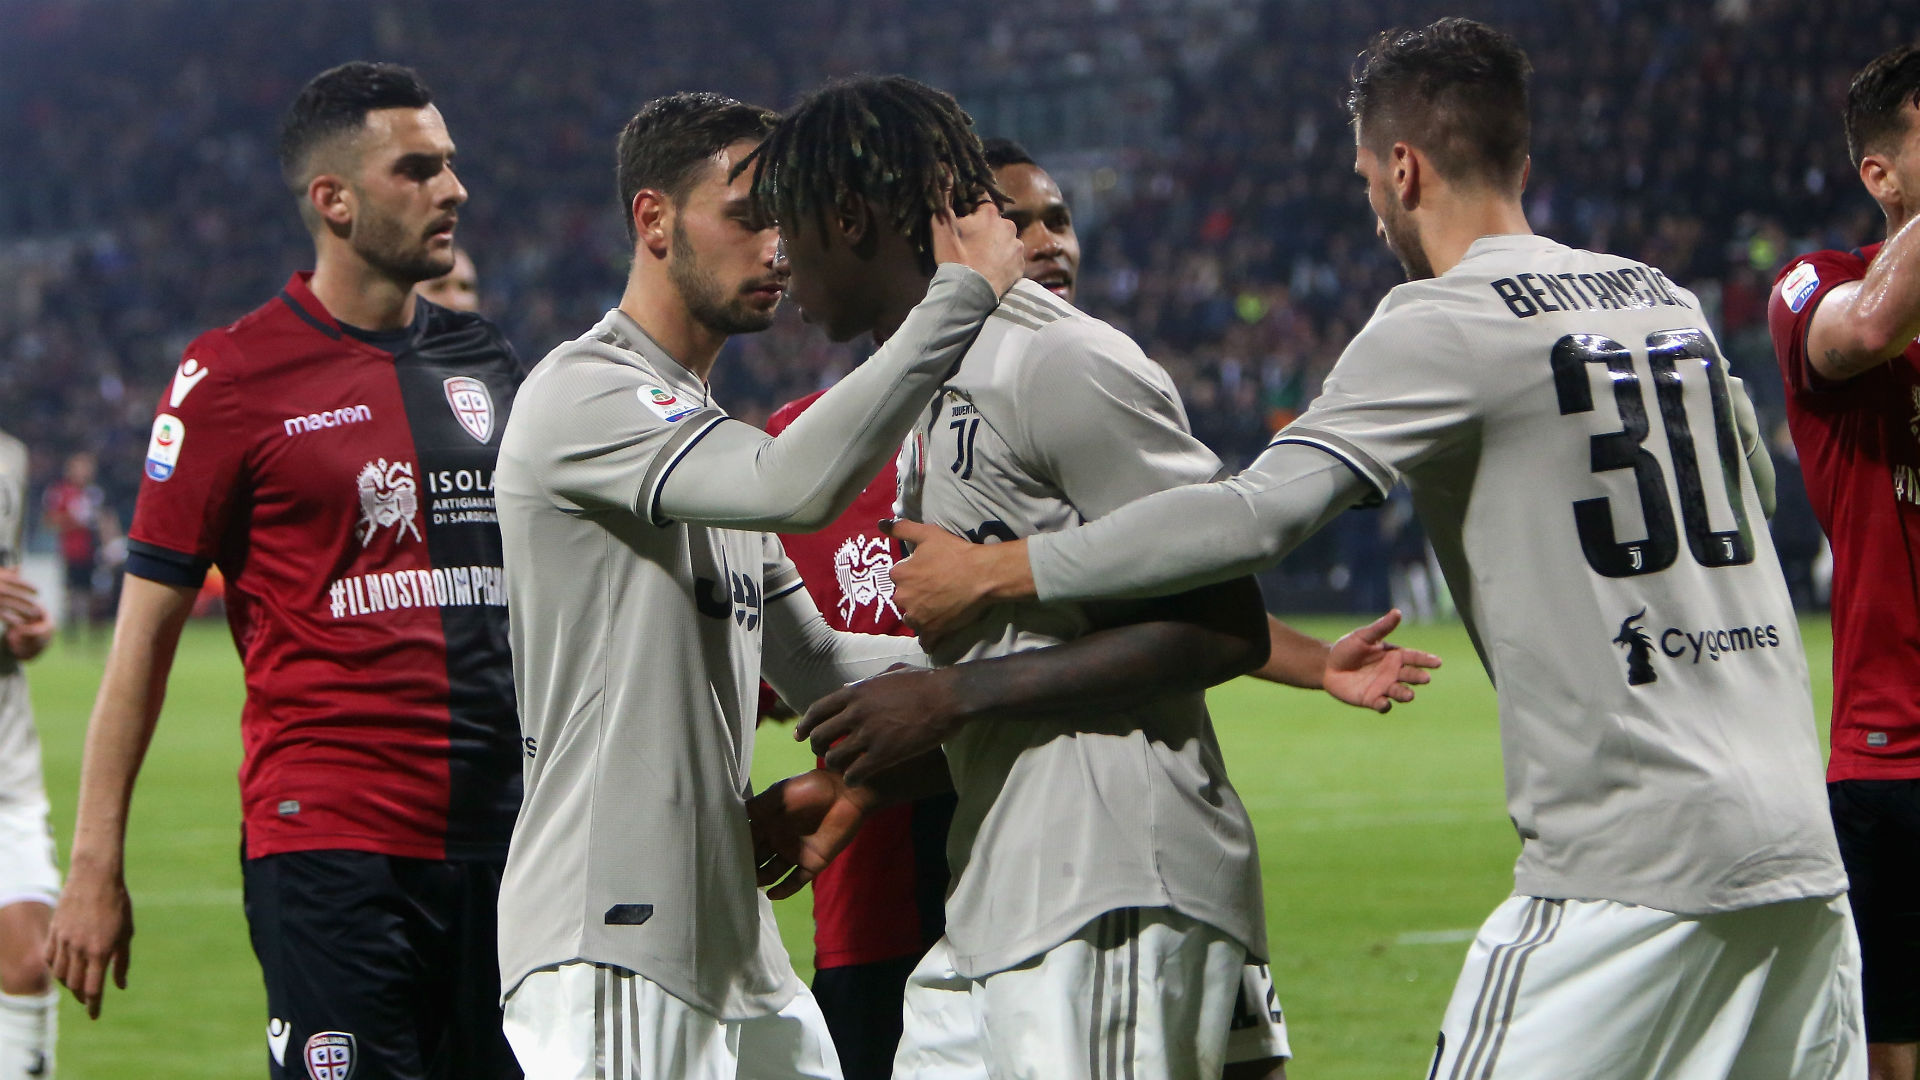 Football needs zero tolerance approach to racism – Roberts angered by Kean incident